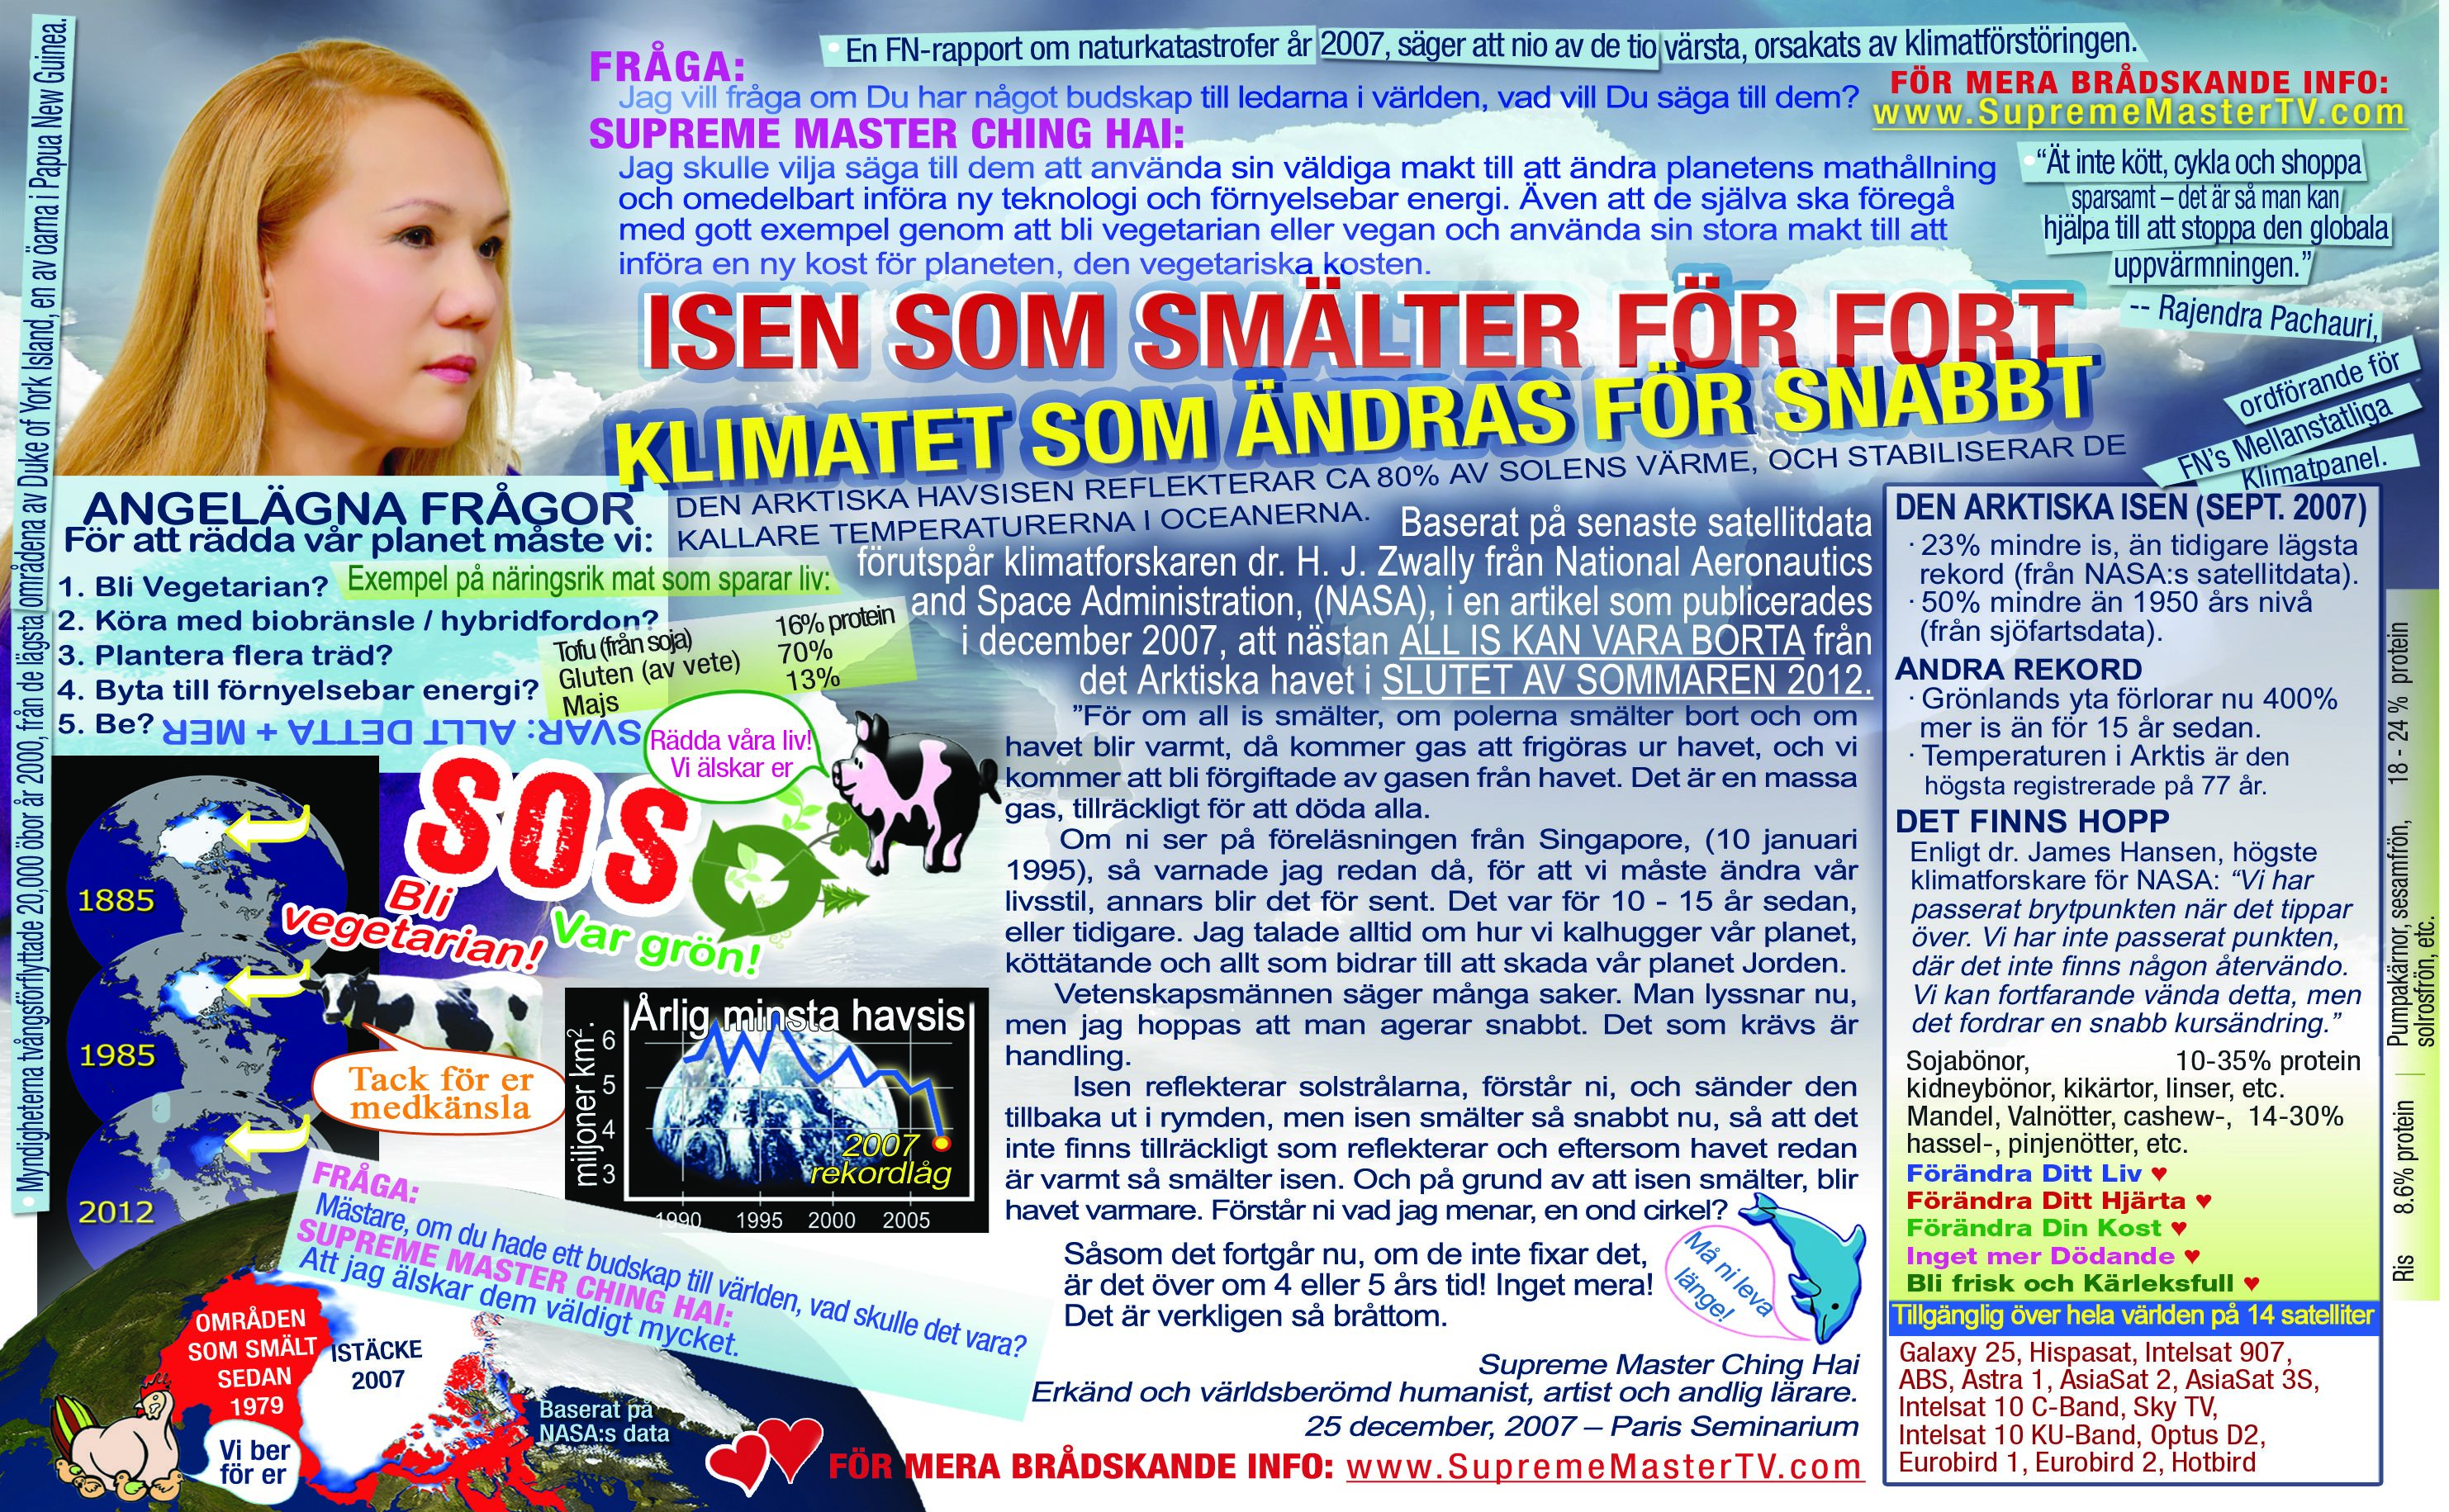 nasa ad newspaper ps7 half